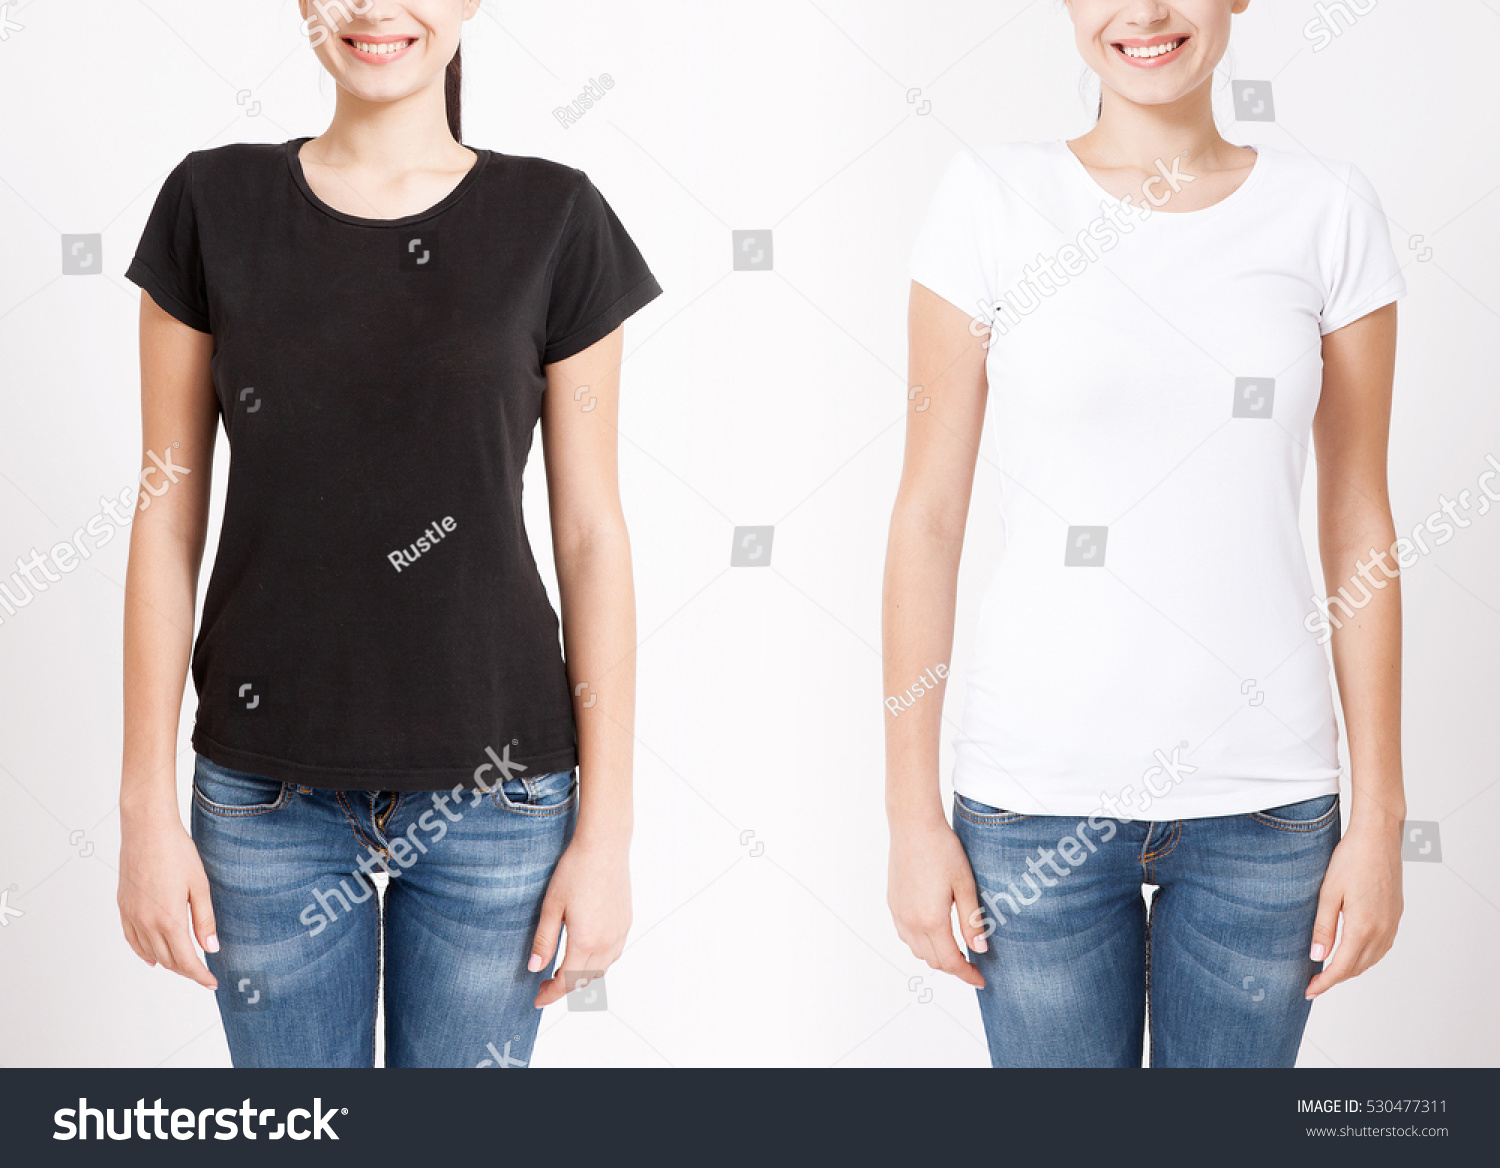 Shirt design white - T Shirt Design And People Concept Close Up Of Young Woman In Shirt Blank